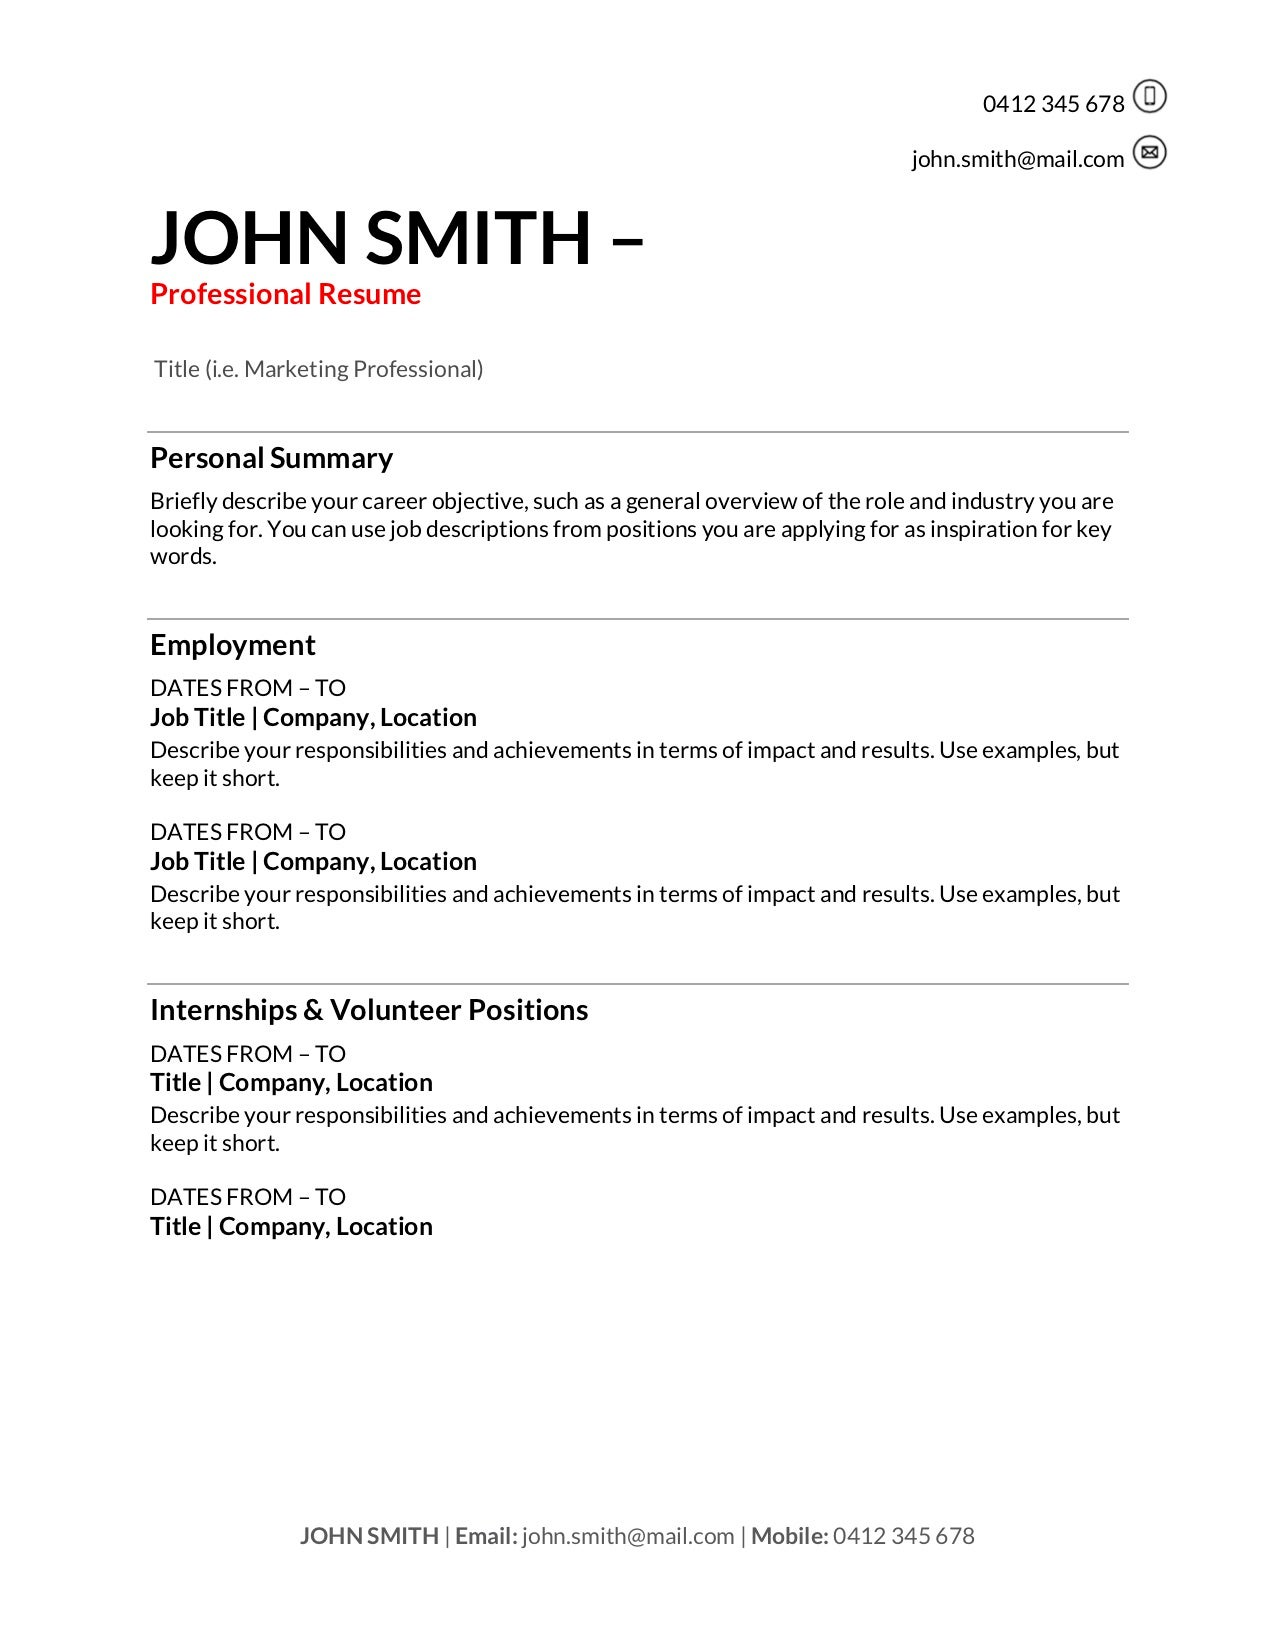 free resume templates to write in training au writing general property accountant sample Resume Writing A General Resume